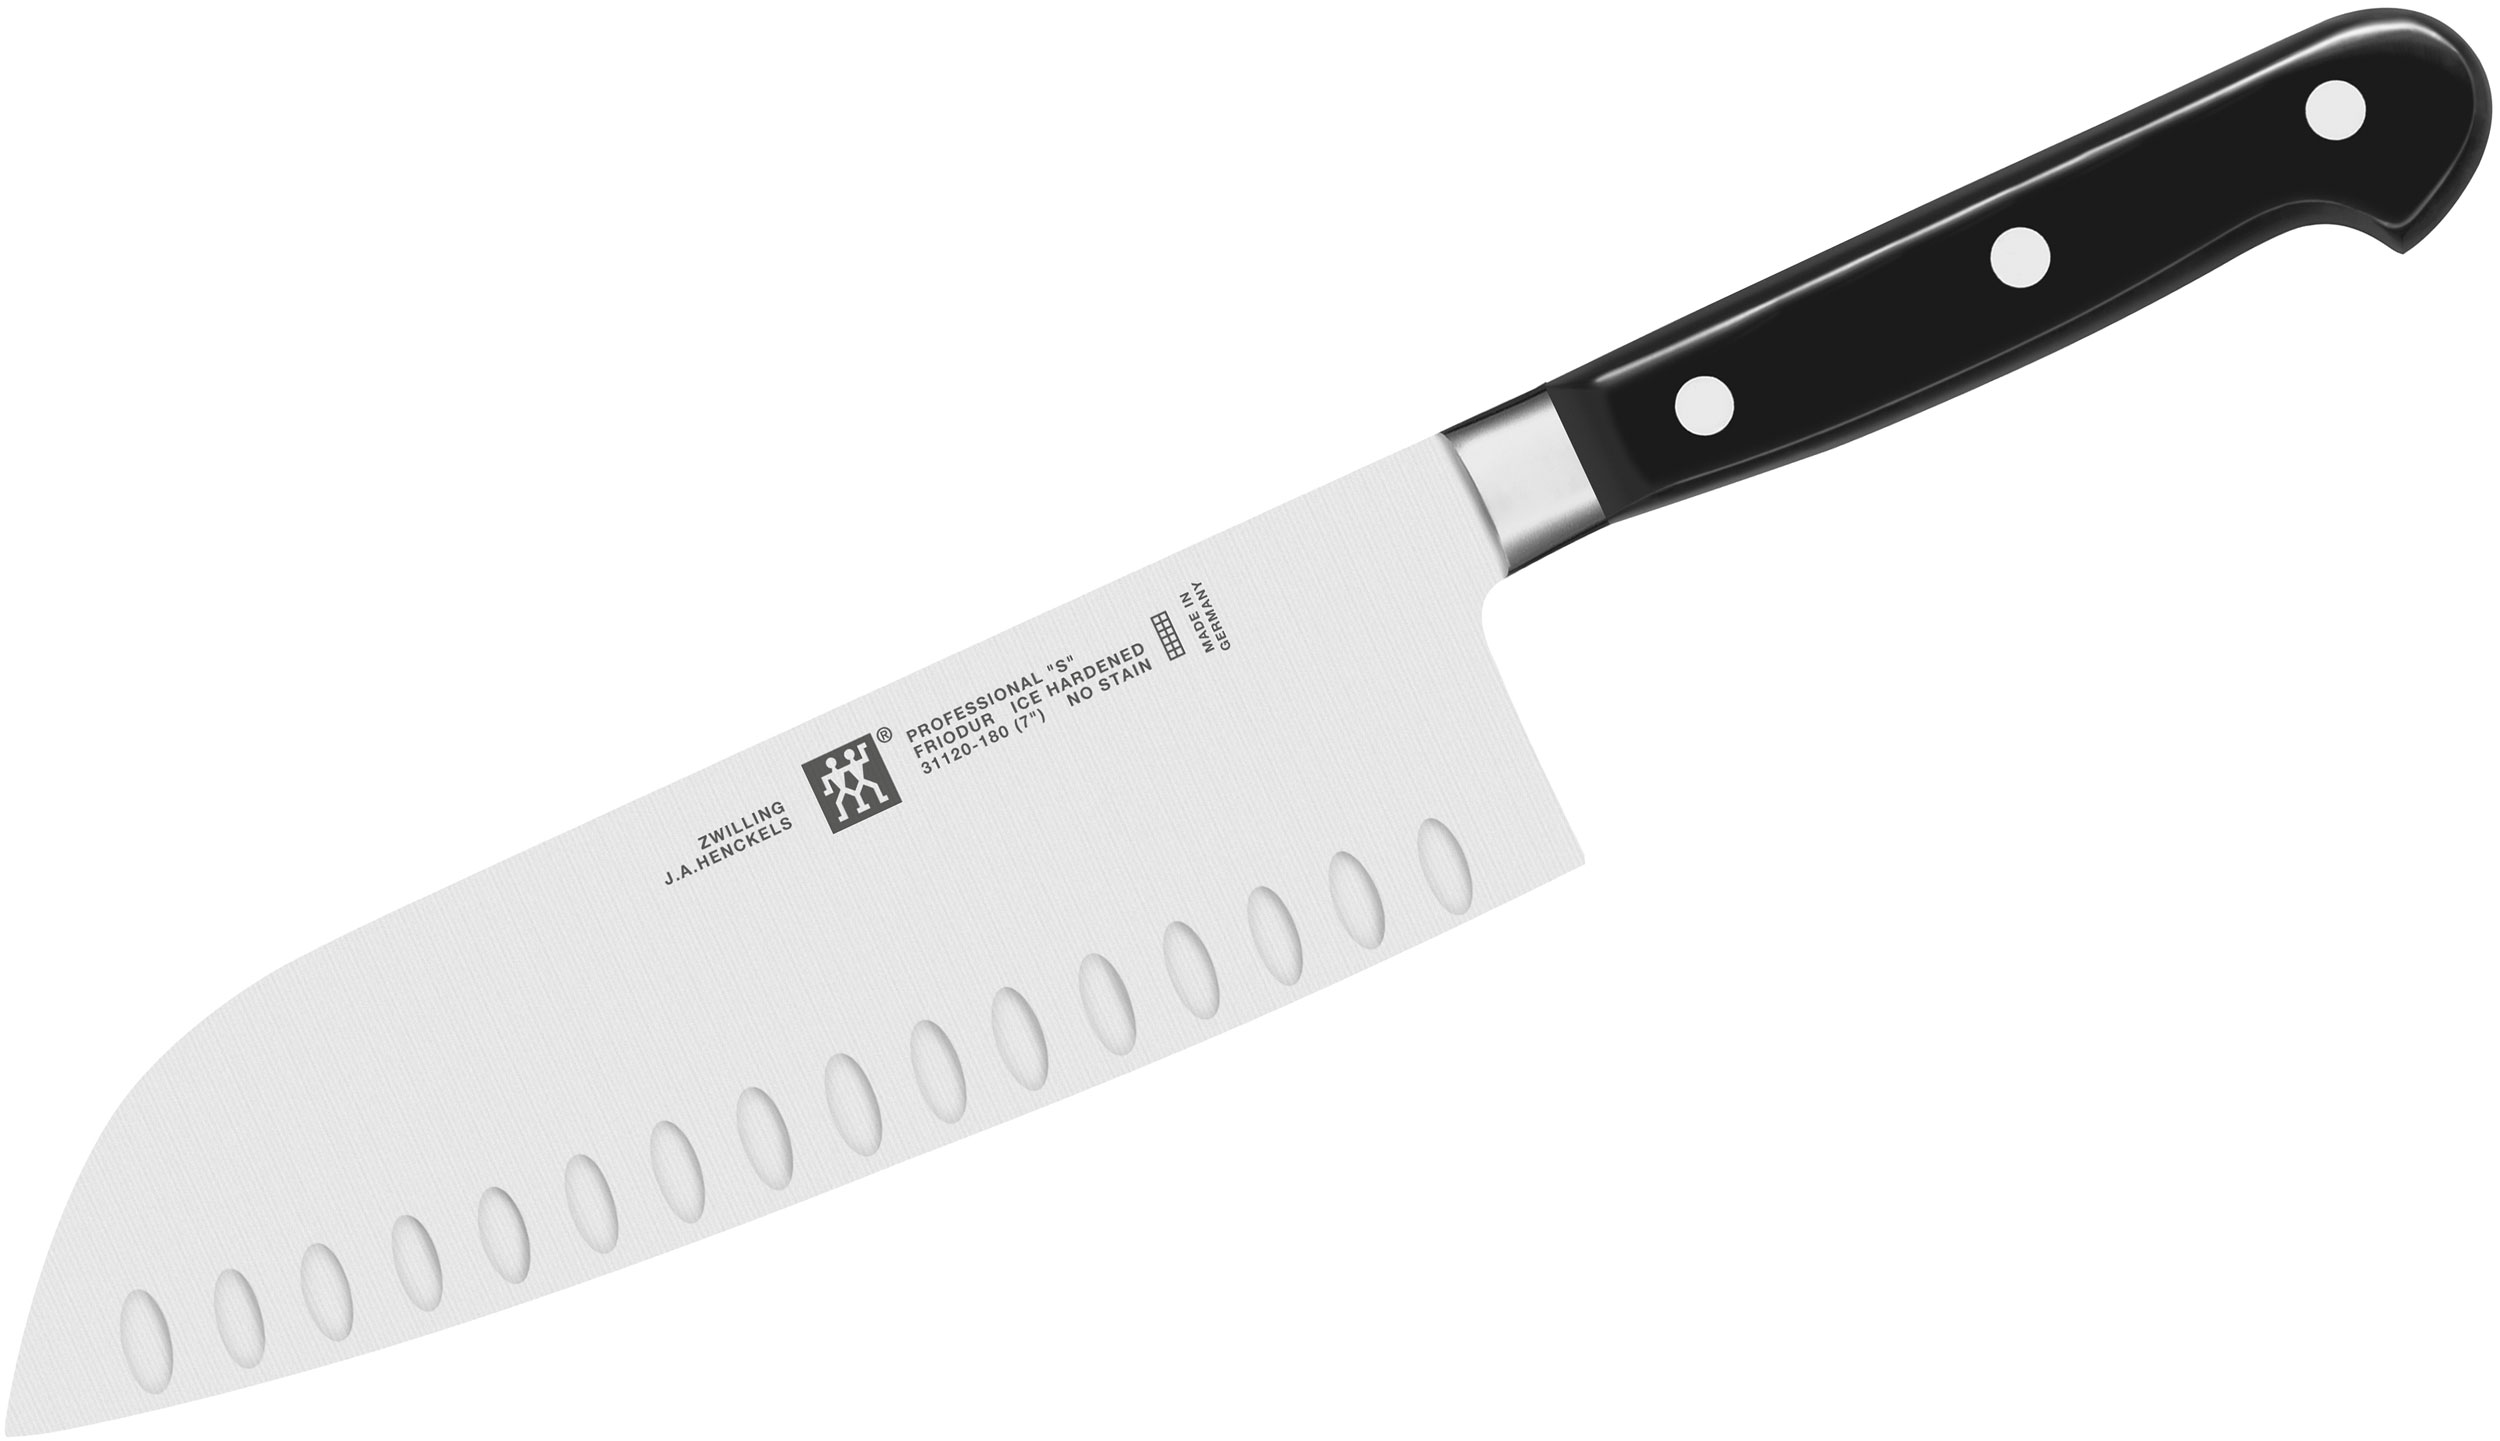 Buy Henckels Santoku Knives at KnifeCenter